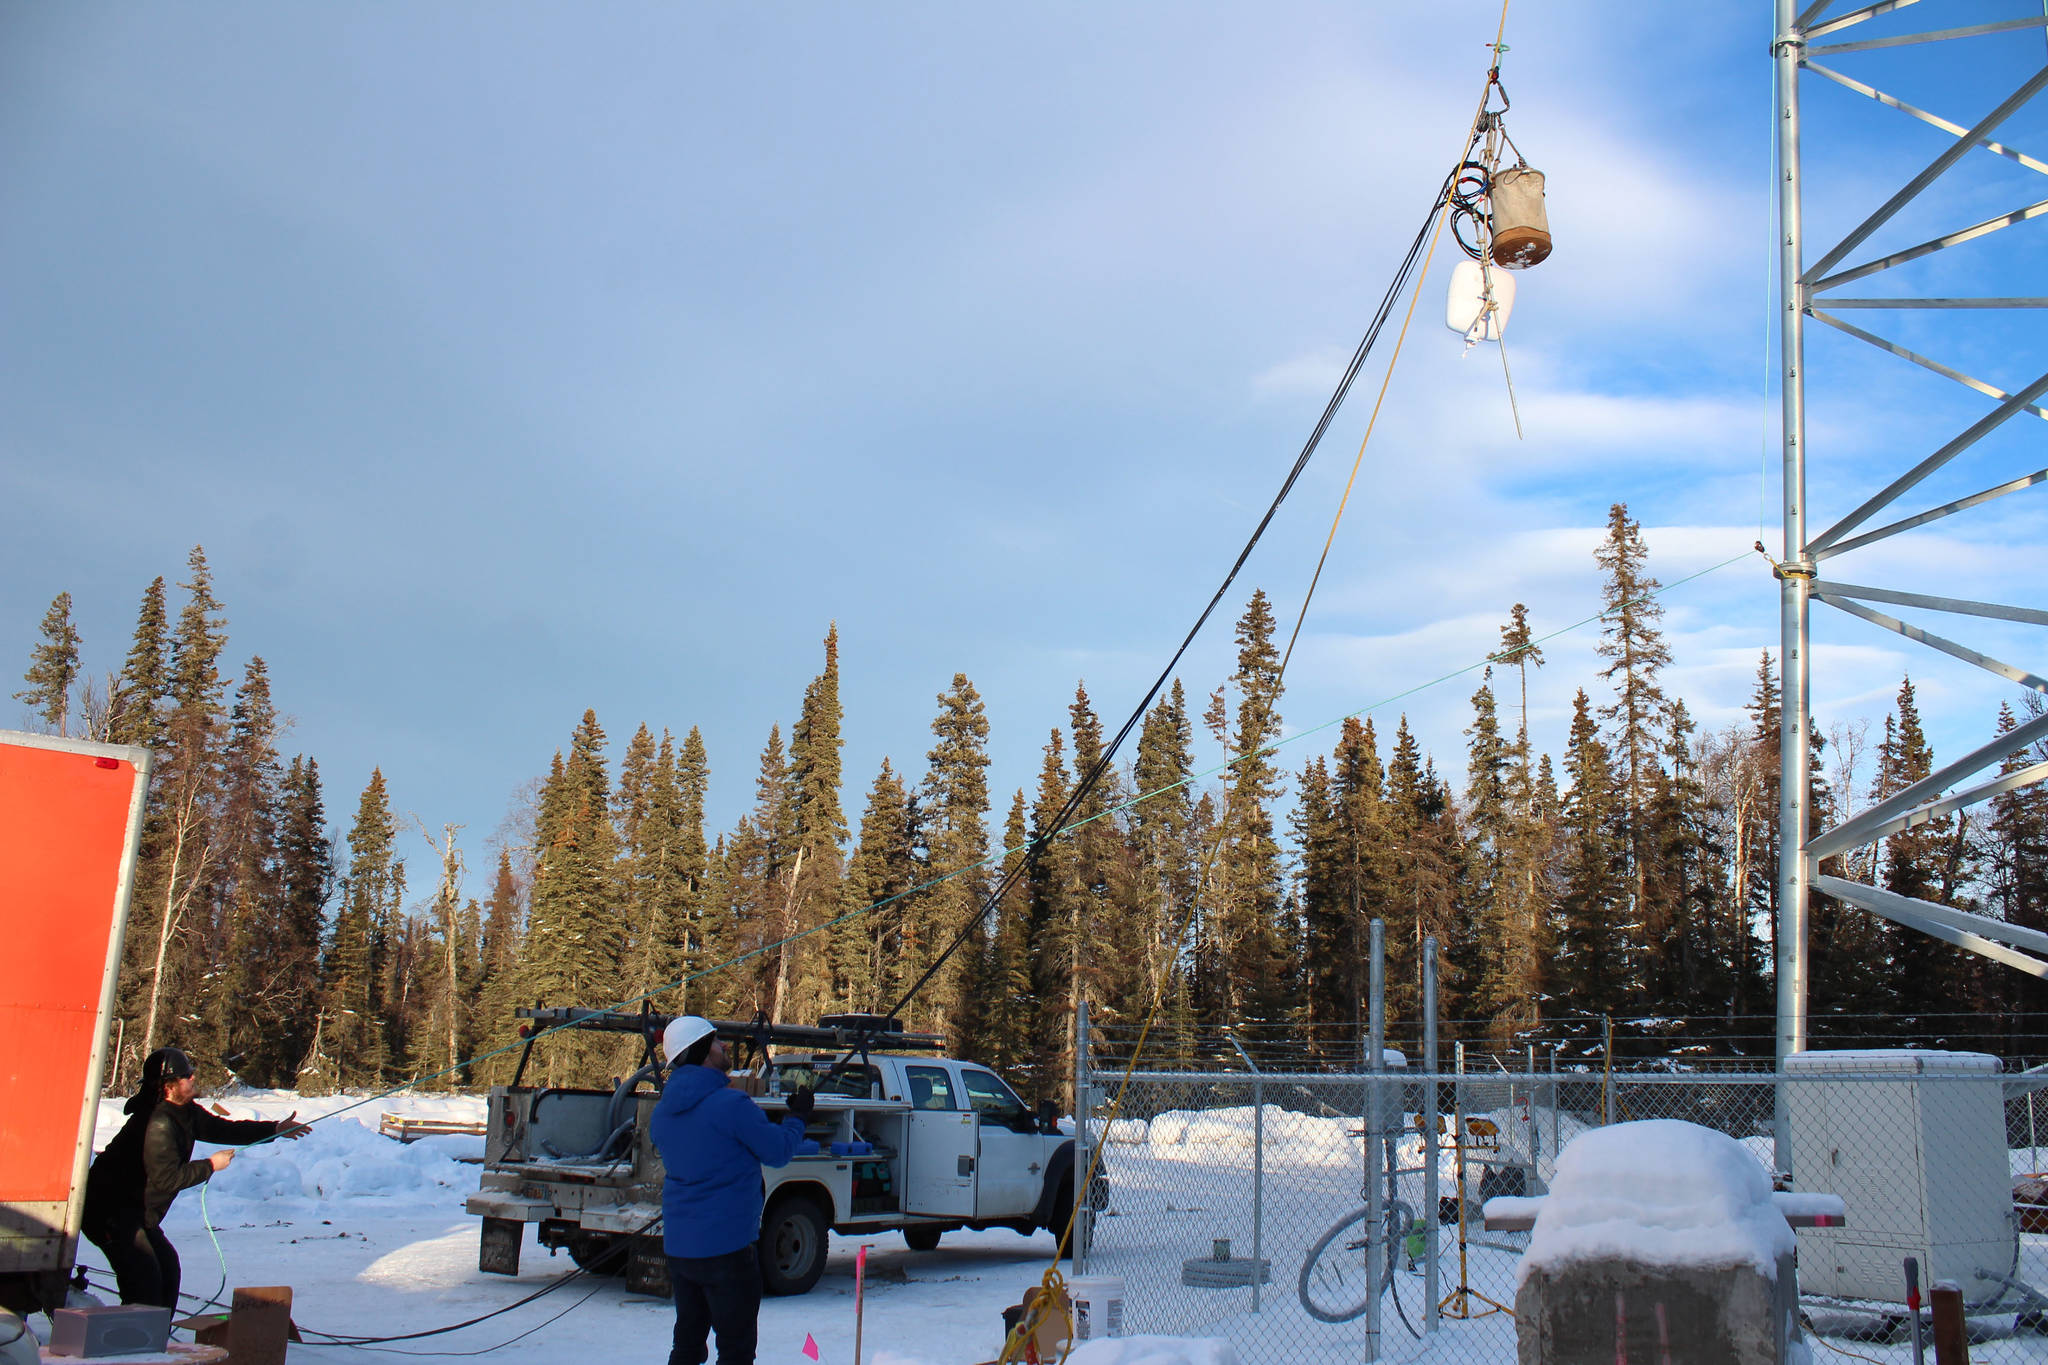 Bryan Stogsdill (left) and McKenzie McCarthy (right) hoist materials to the top of a communications tower on Thursday, Jan. 7 in Nikiski, Alaska. (Ashlyn O'Hara/Peninsula Clarion)